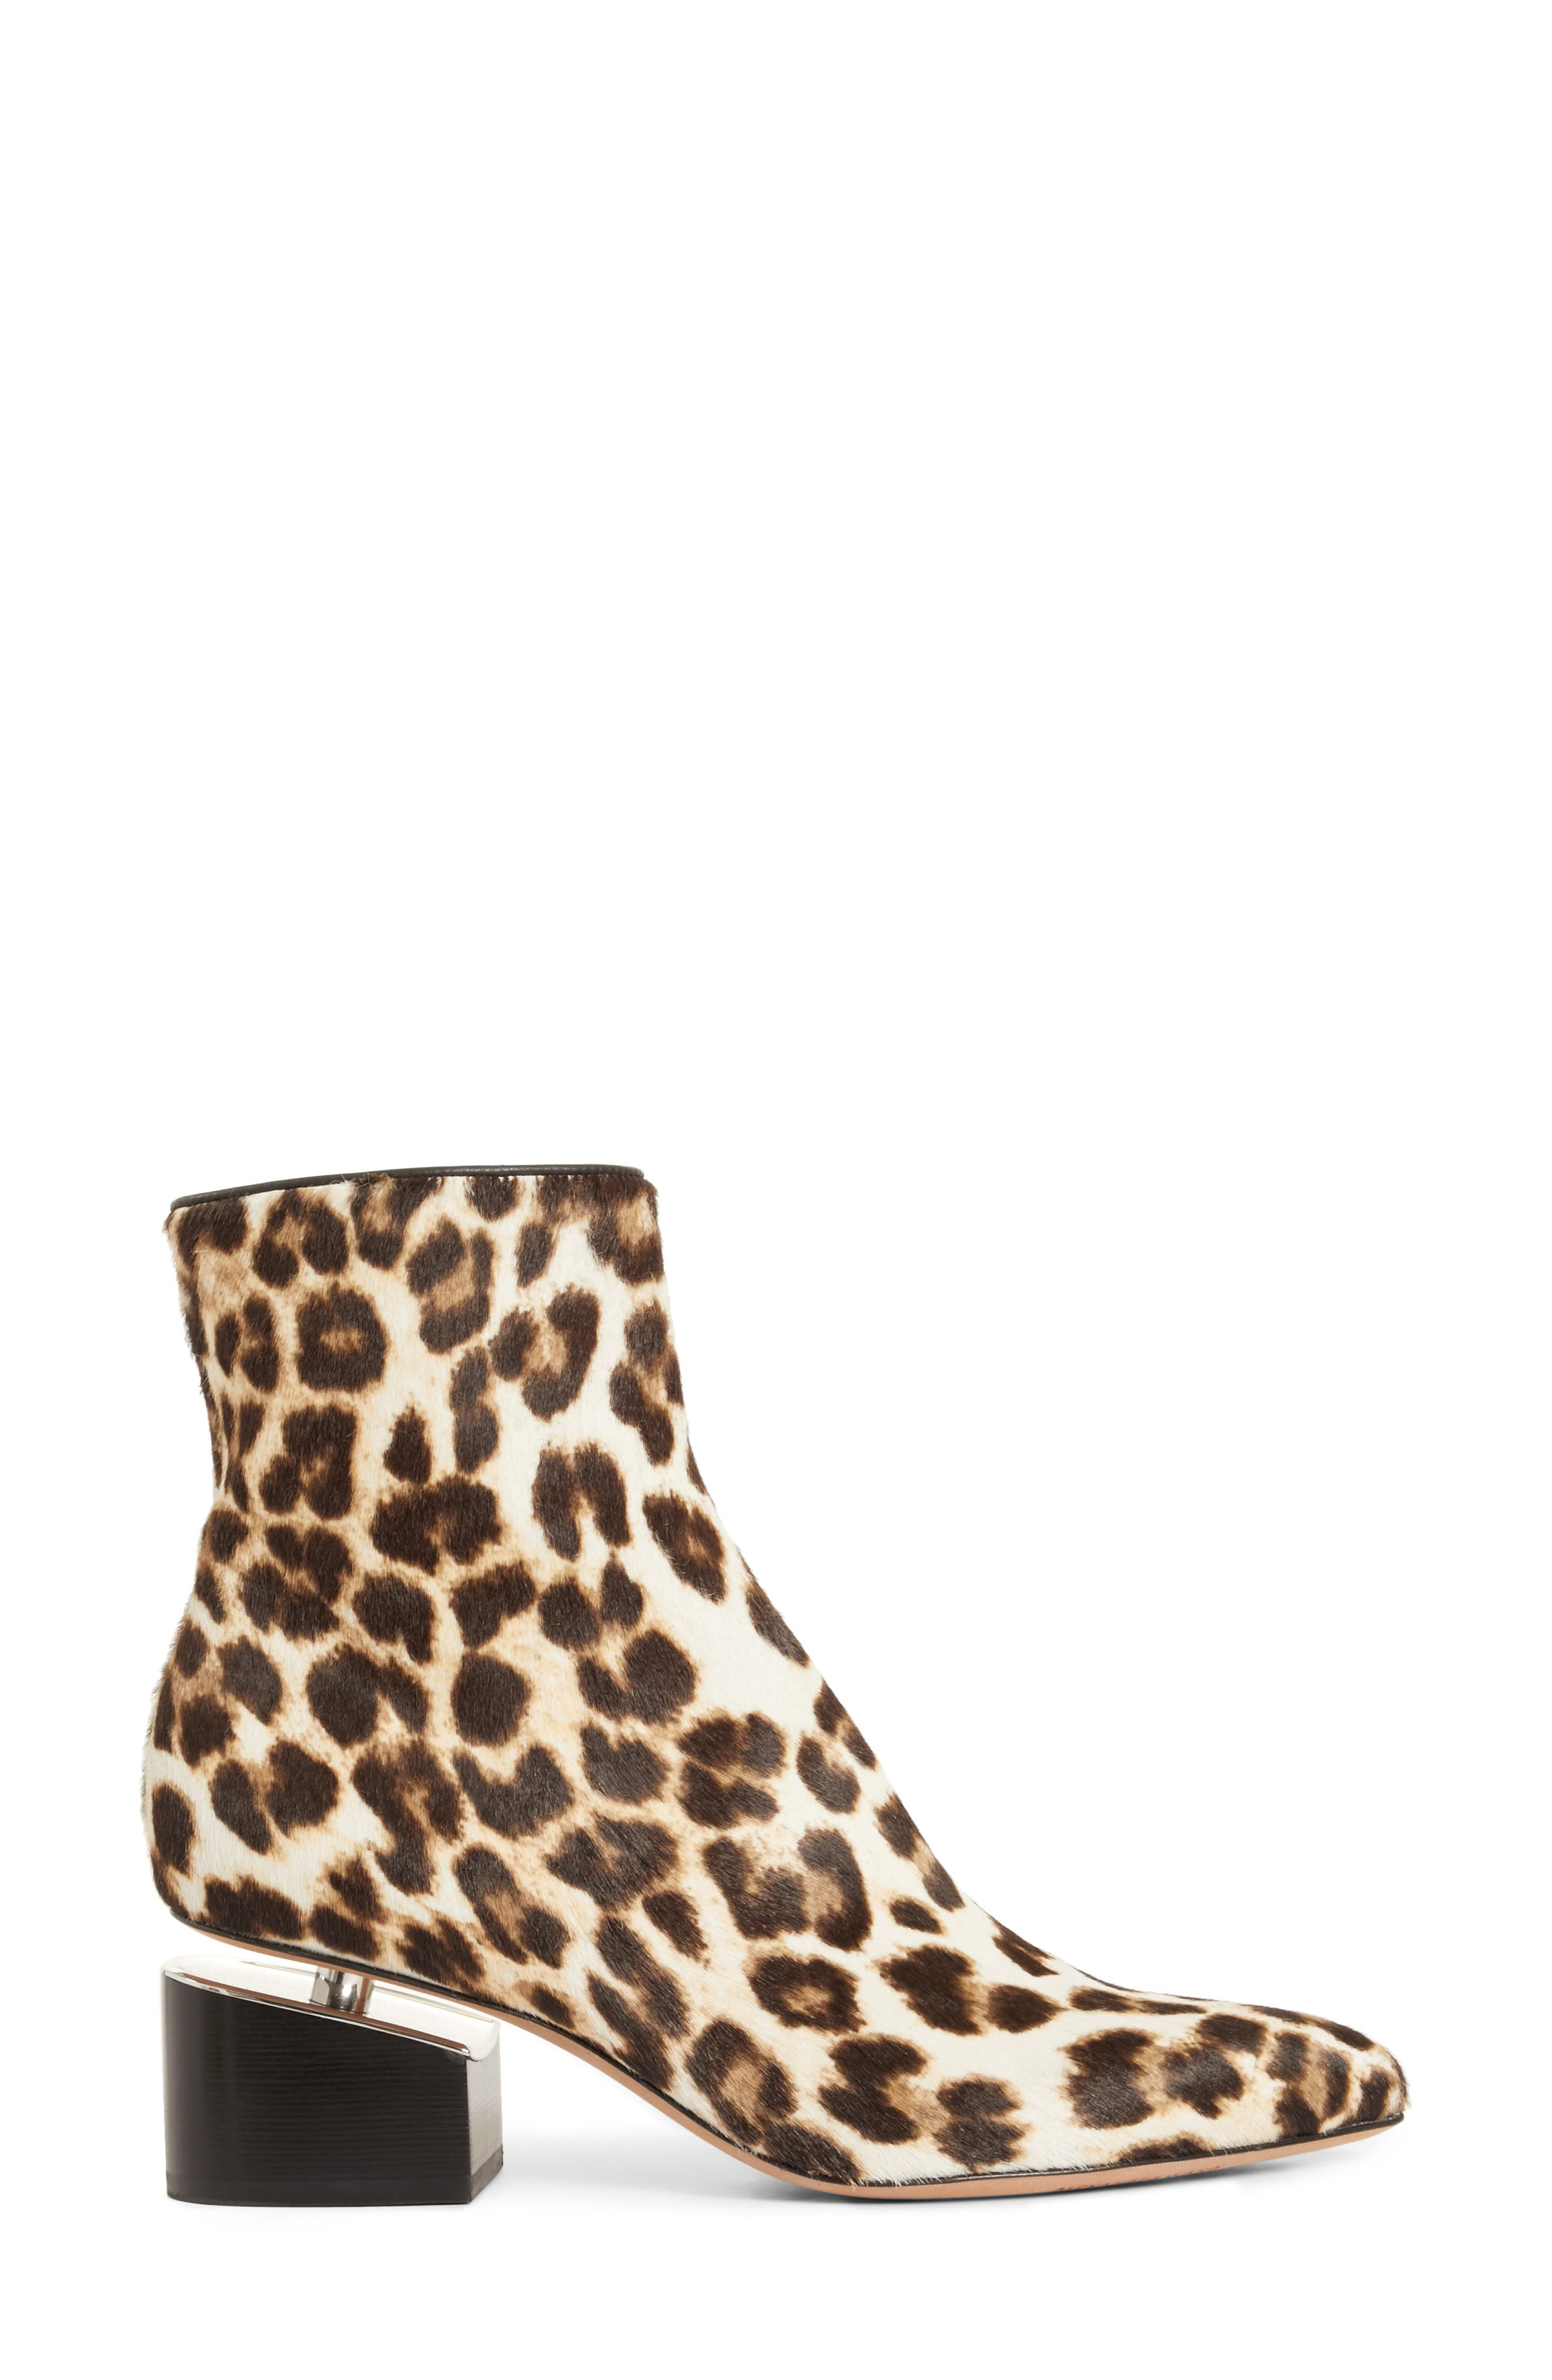 Jude Genuine Calf Hair Bootie,                             Alternate thumbnail 3, color,                             Leopard Print